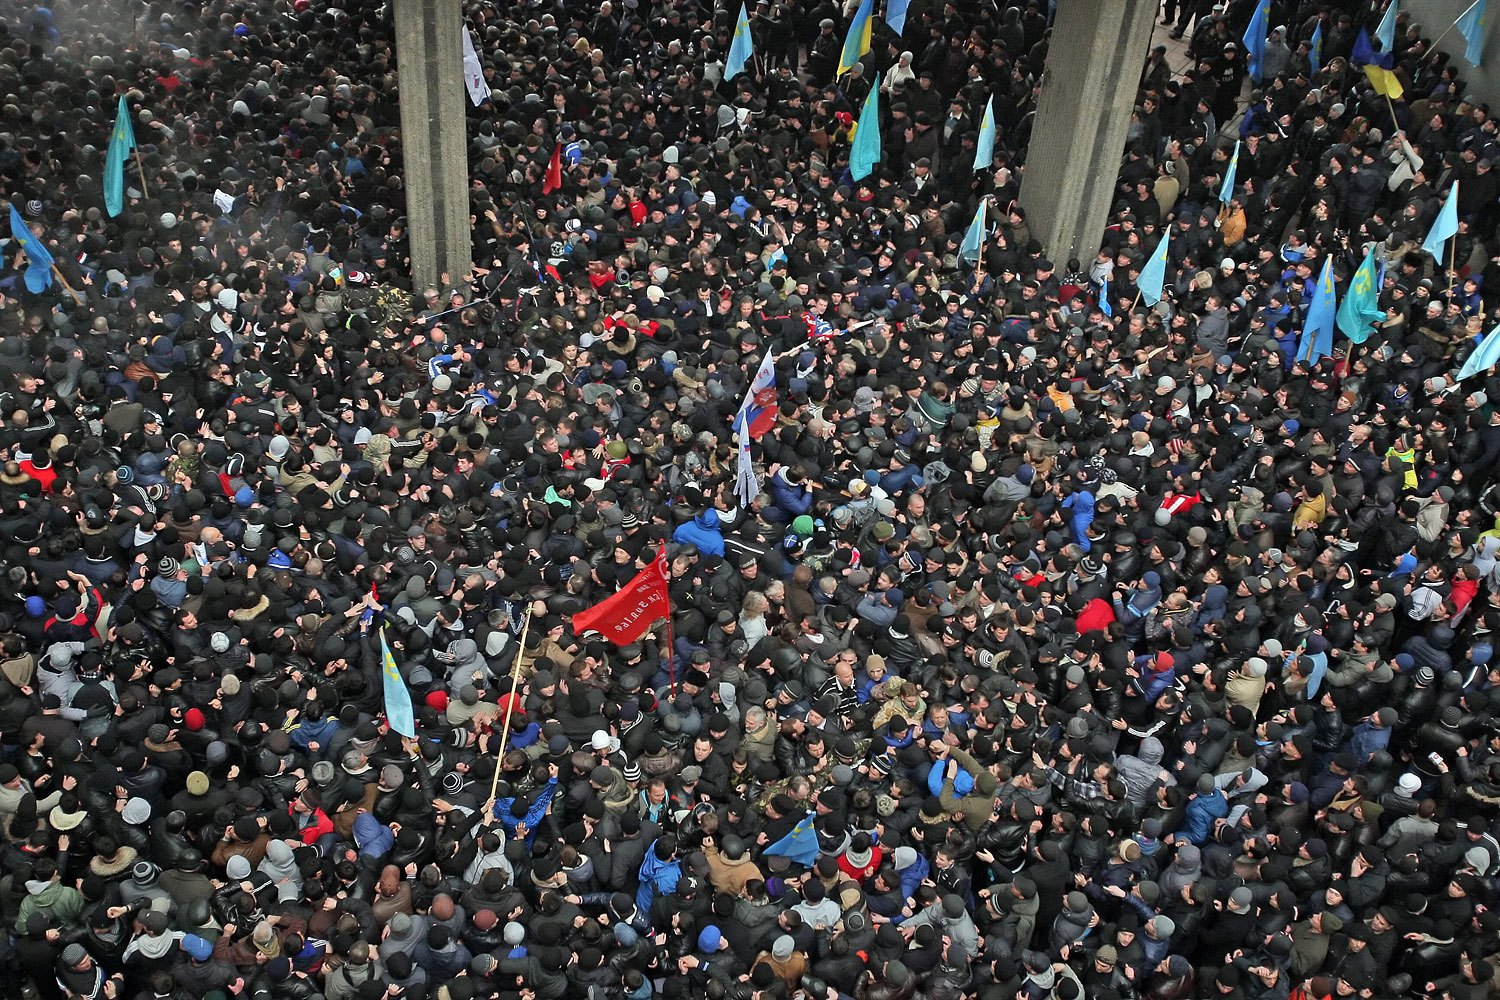 Ukrainian and Russian supporters clash during a protest near the Parliament building in Simferopol, Feb. 26, 2014.